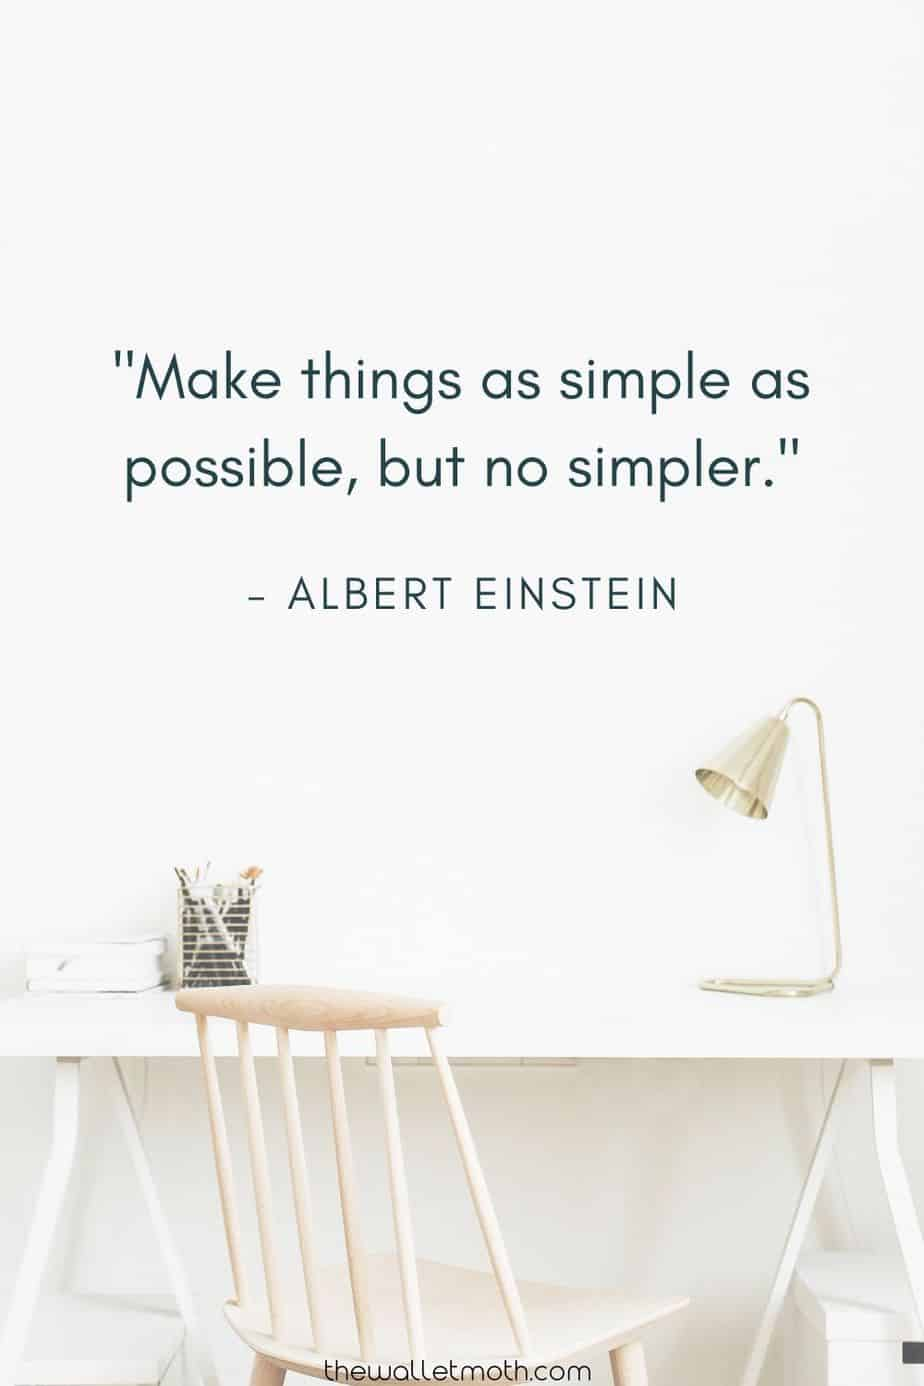 """Make things as simple as possible, but no simpler."" - Albert Einstein"